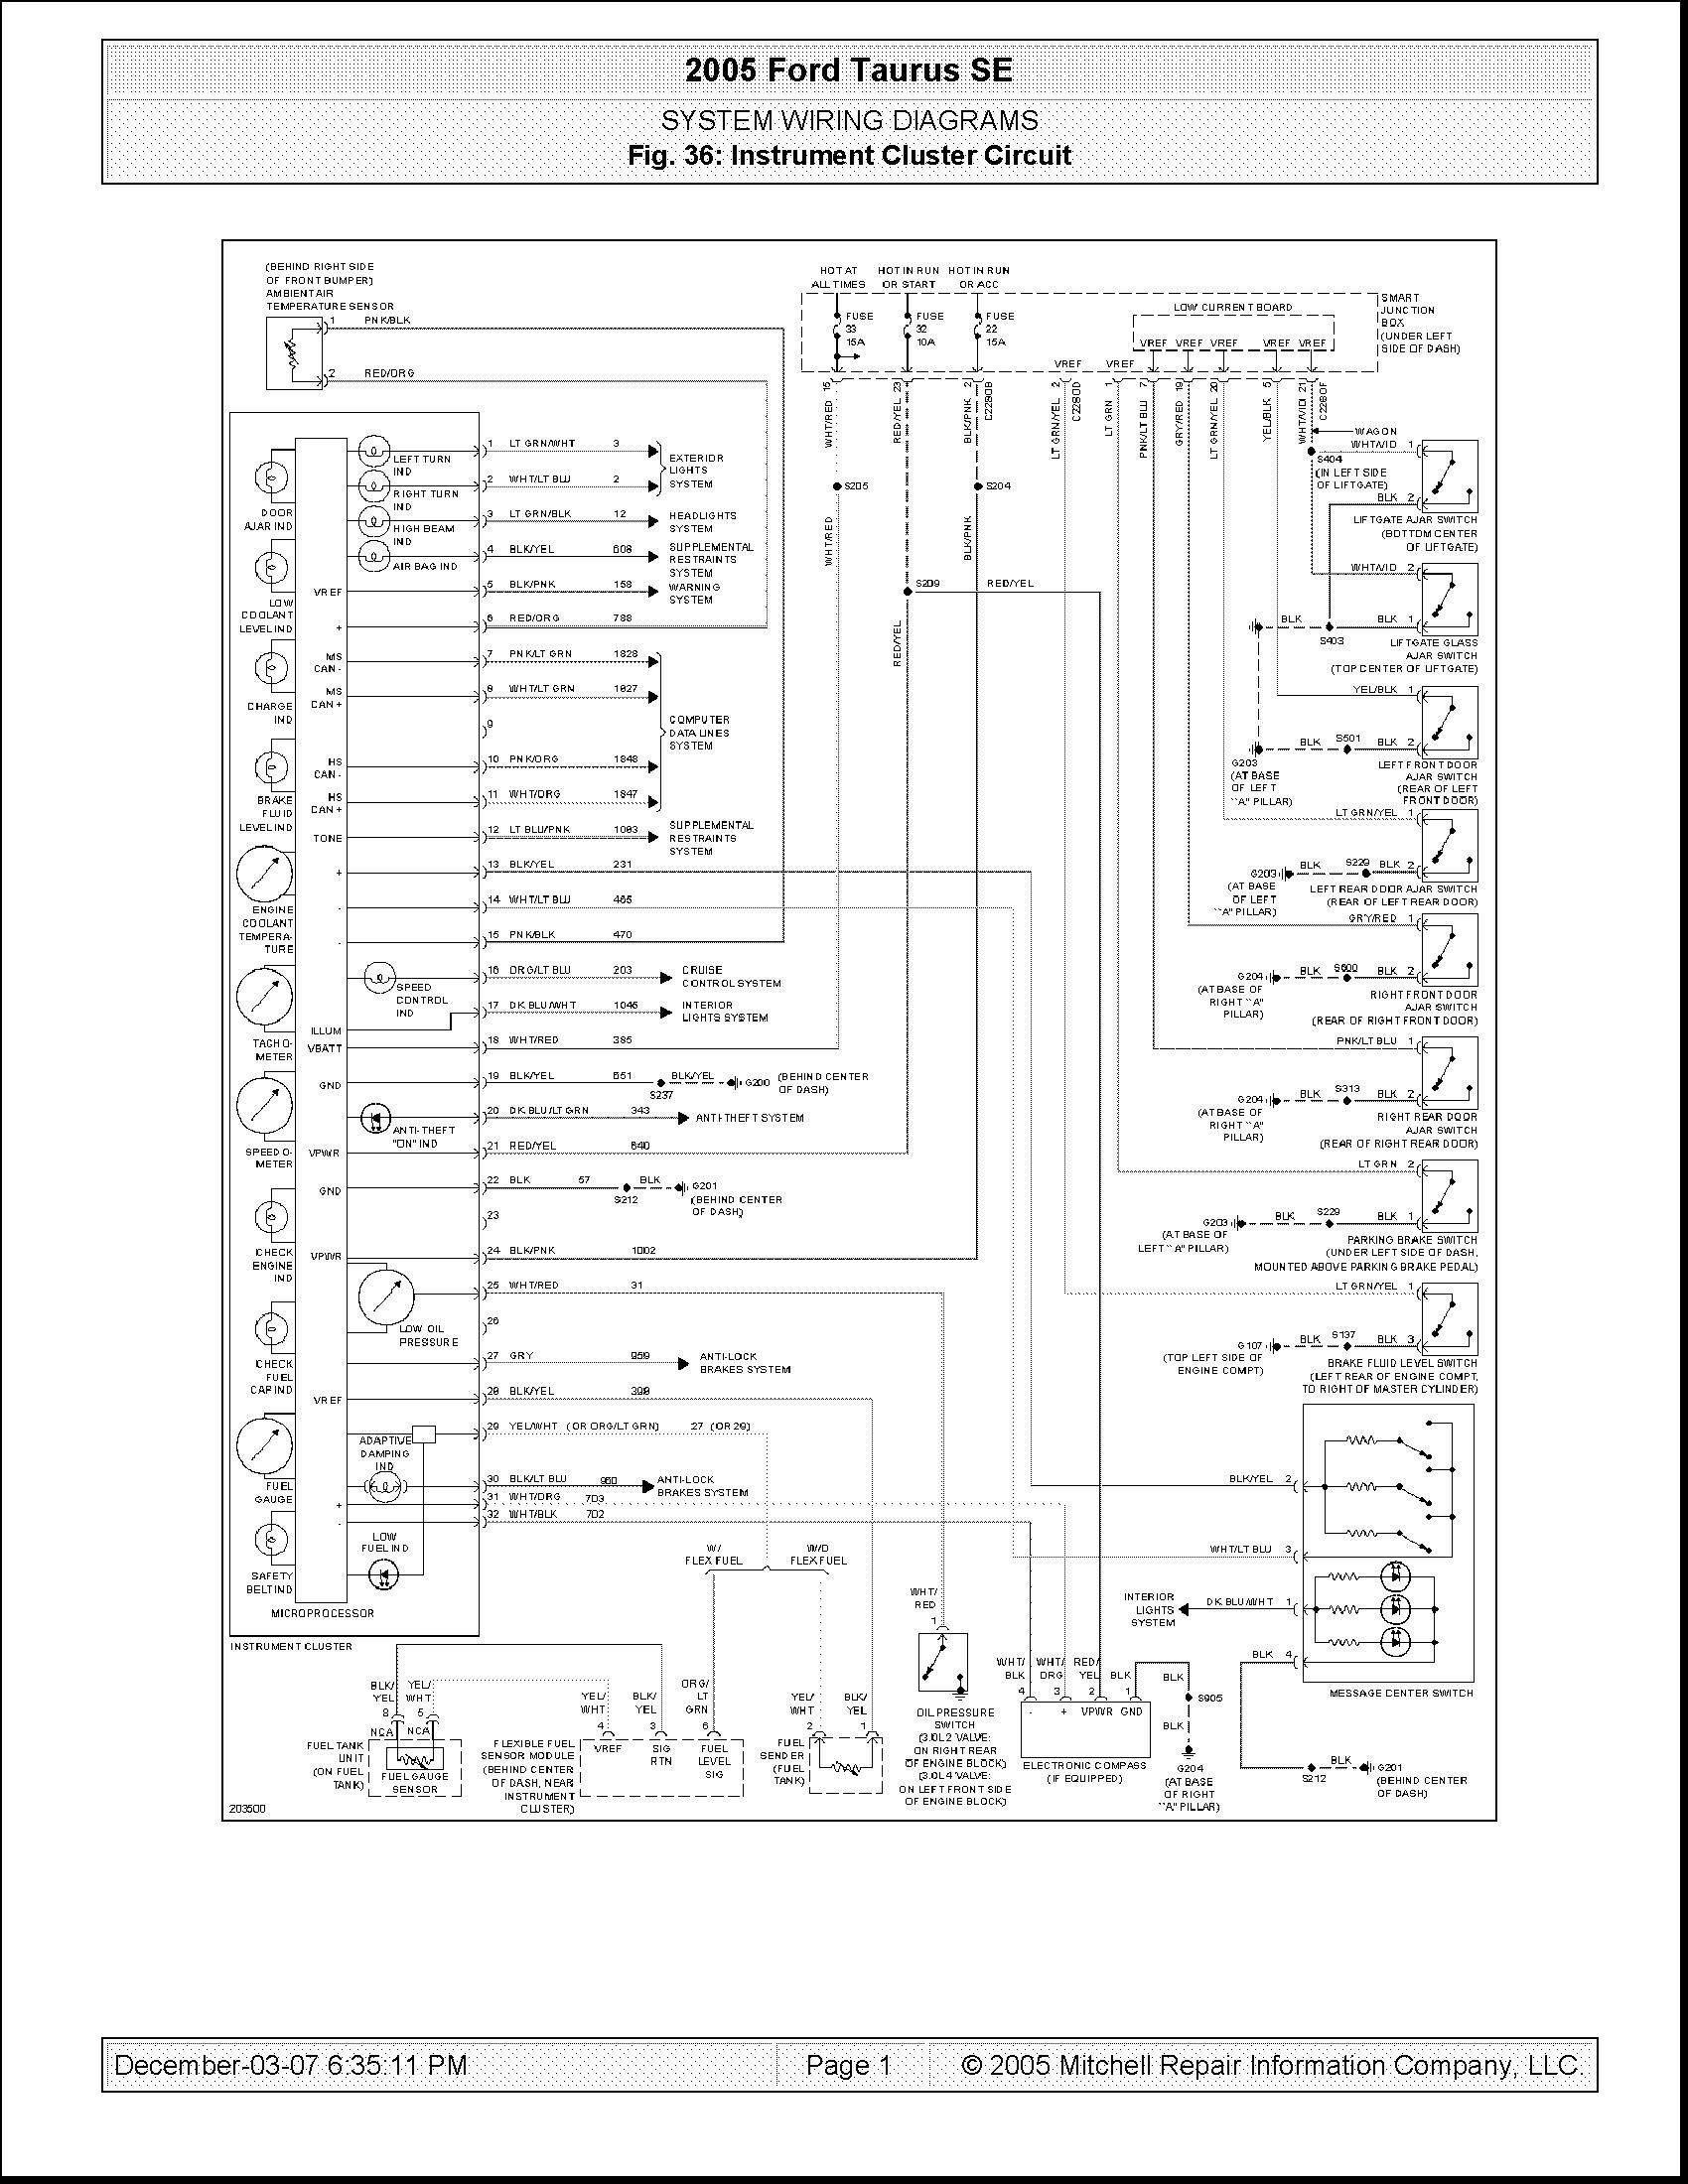 2001 ford mustang radio wiring diagram - ford truck radio wiring harness  for wiring diagram schematics  wiring diagram schematics